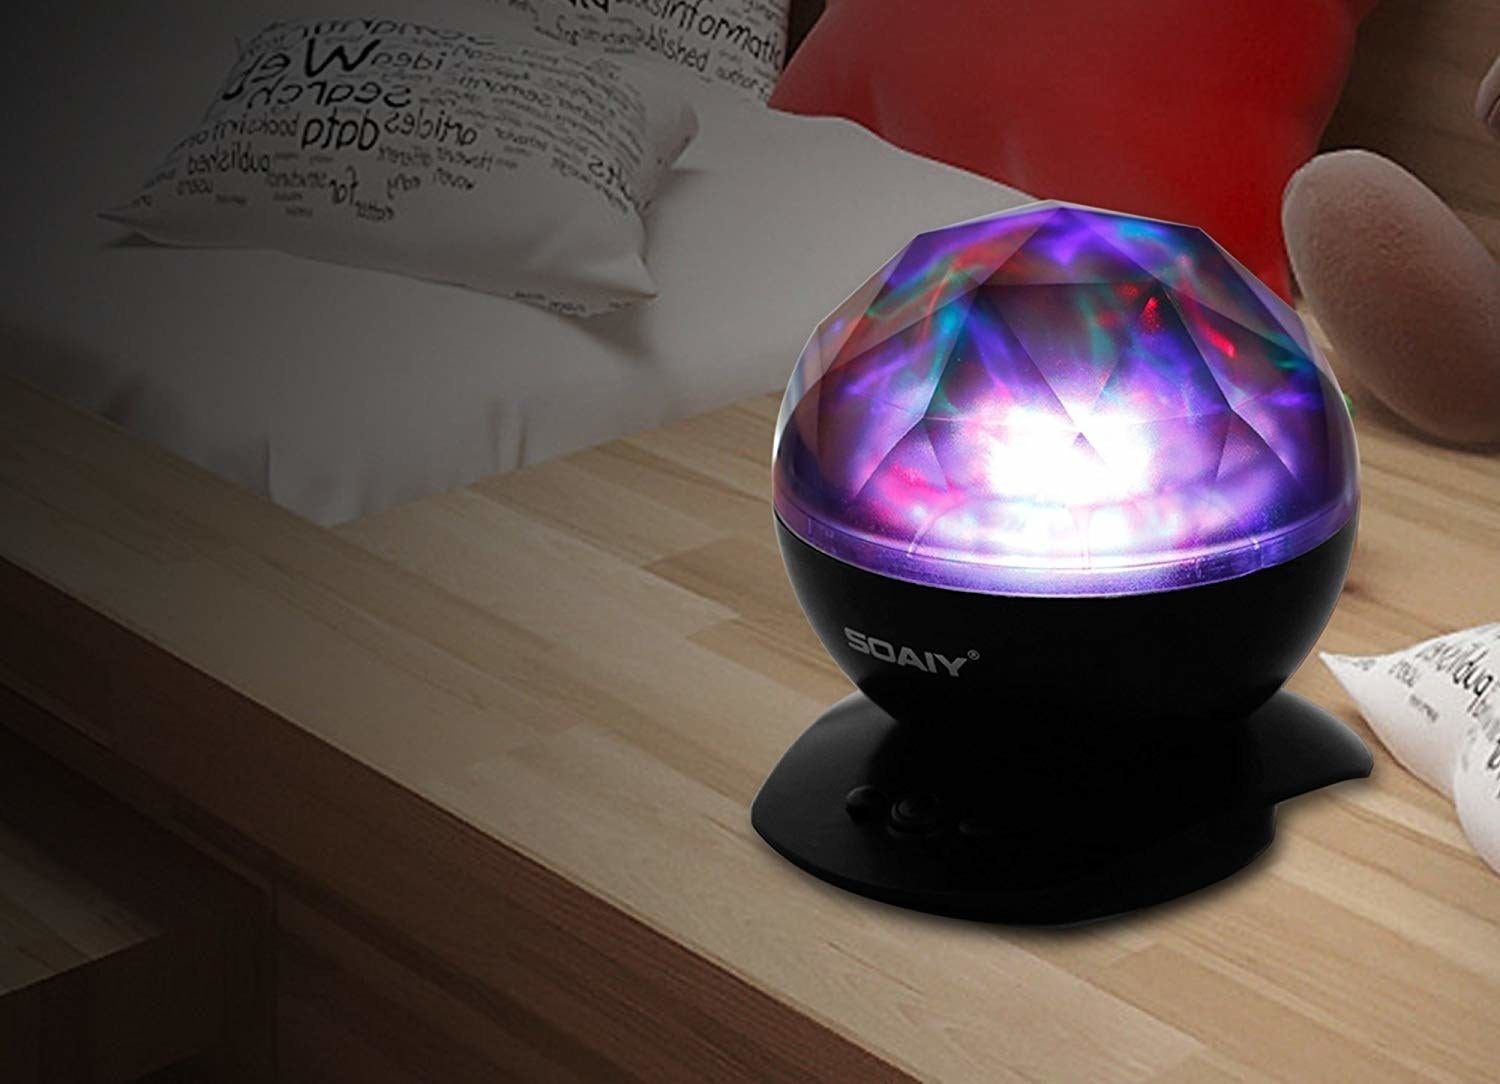 The faceted light projector